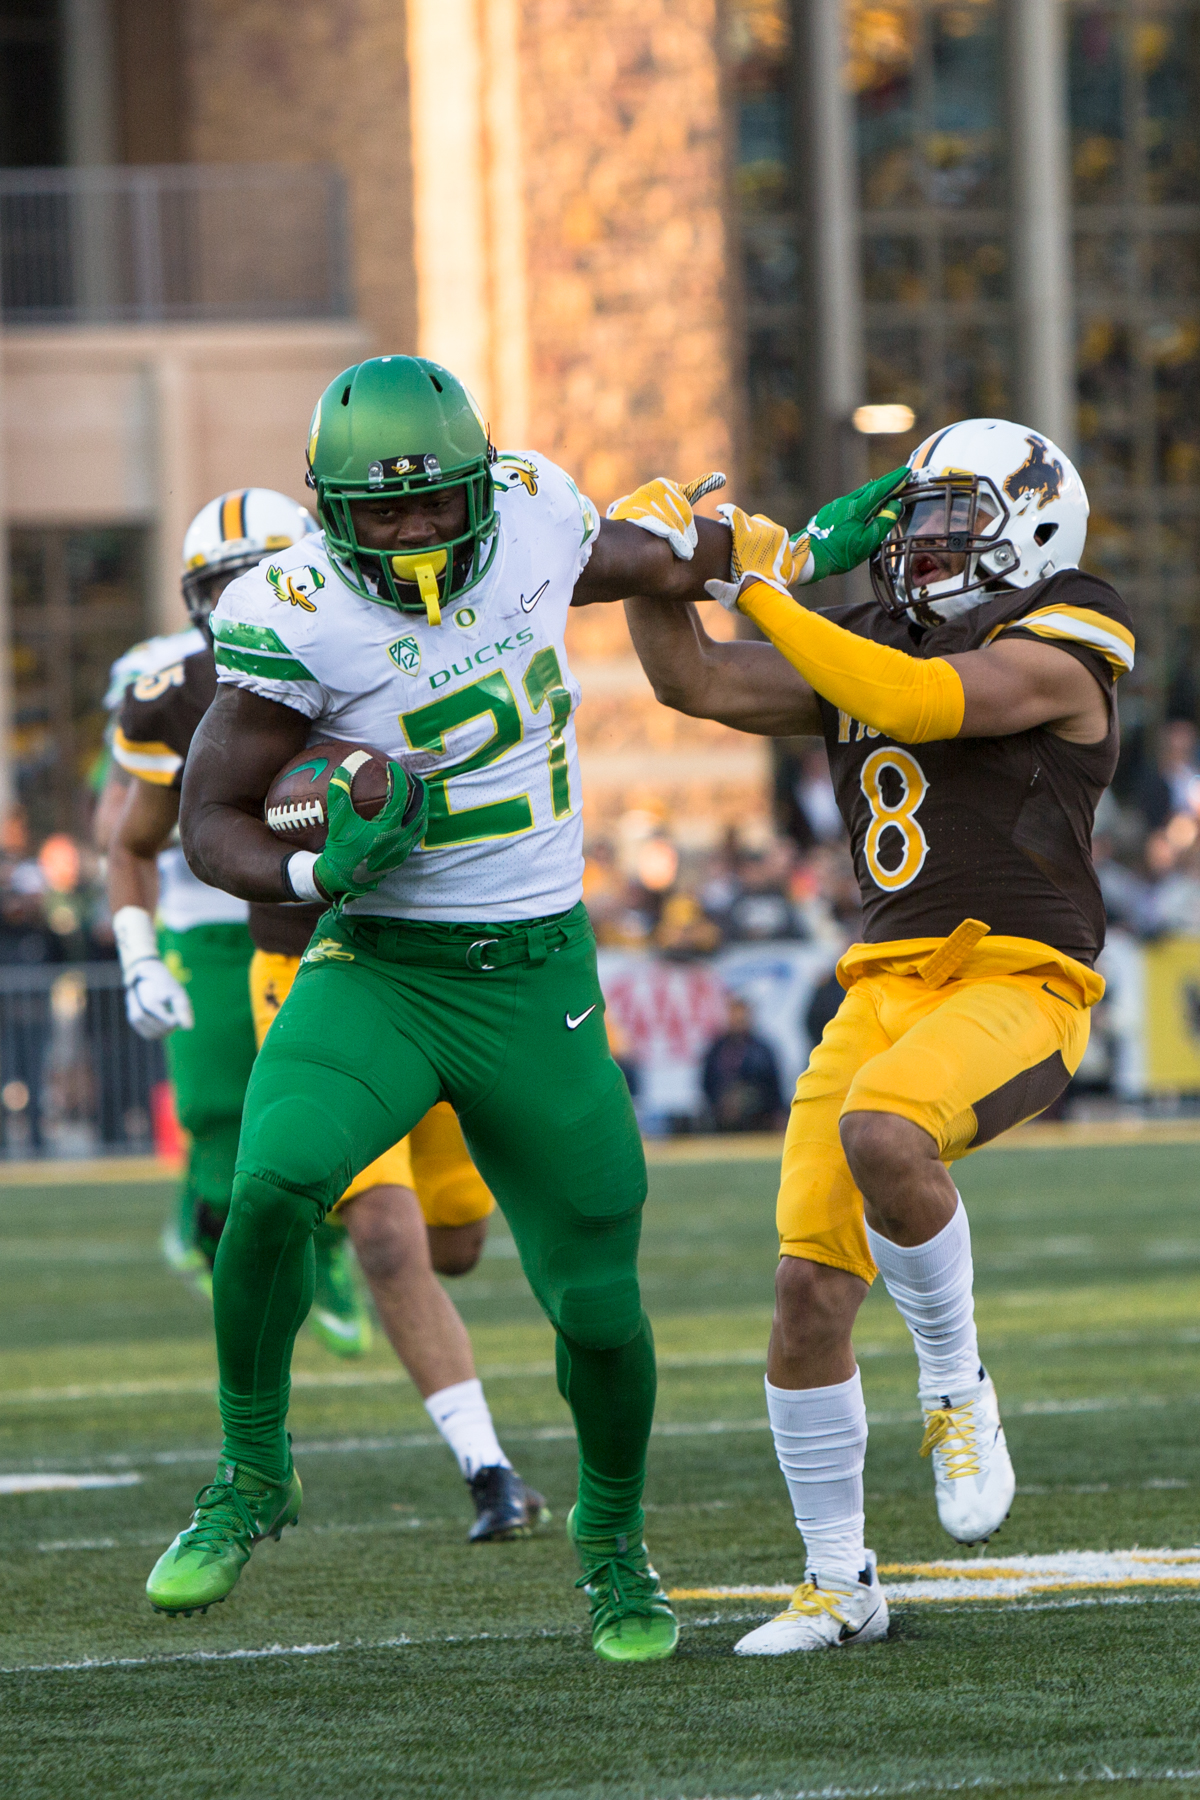 Oregon running back Royce Freeman (#21) stiff-arms Wyoming linebacker Jalen Ortiz (#8). The Oregon Ducks lead the Wyoming Cowboys 42 to 10 at the end of the first half on Saturday, September 16, 2017 in Laramie, Wyo. Photo by Austin Hicks, Oregon News Lab